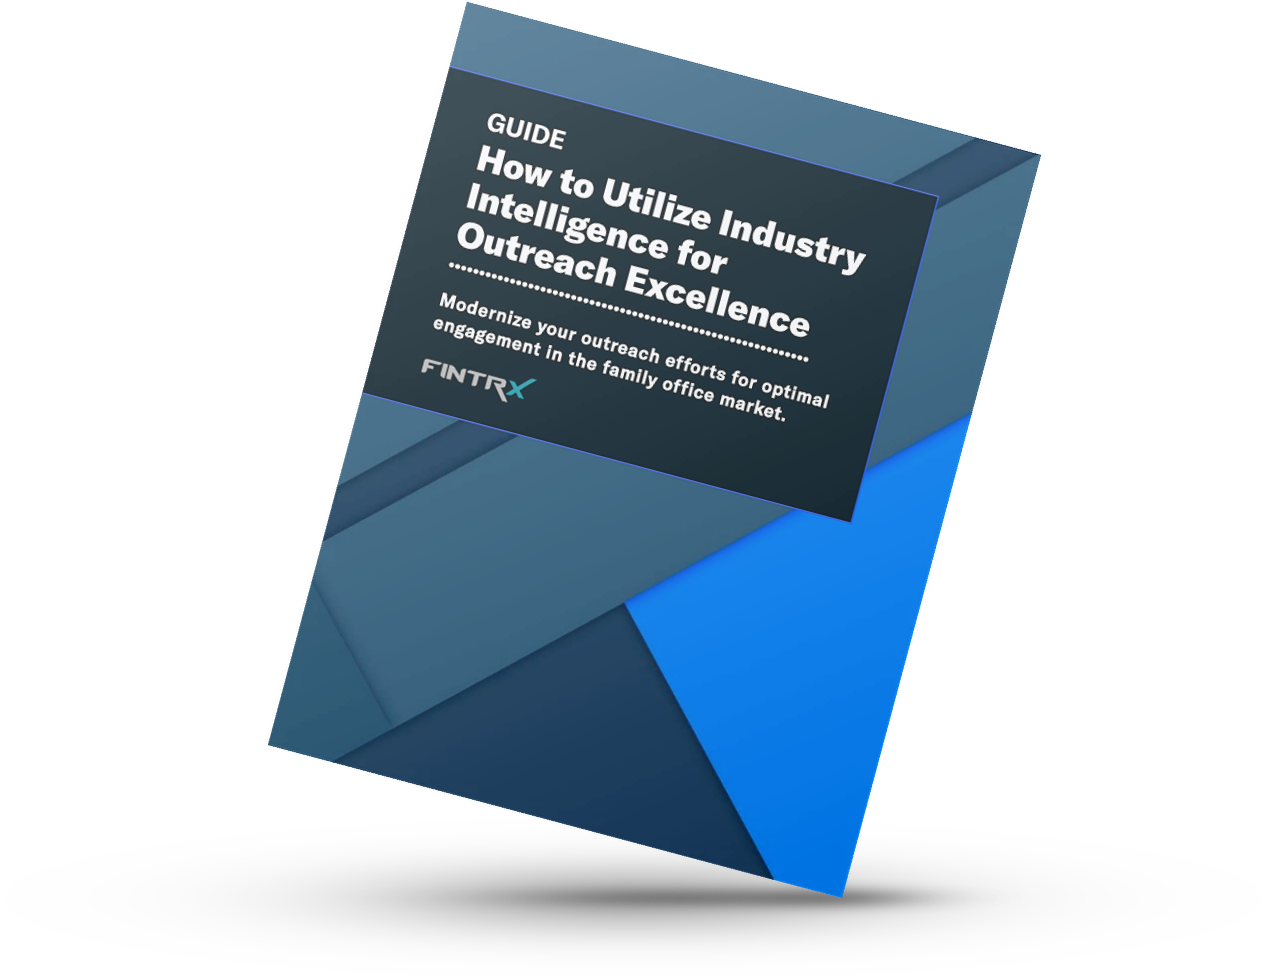 How to Utilize Industry Intelligence for Outreach Excellence - blog image